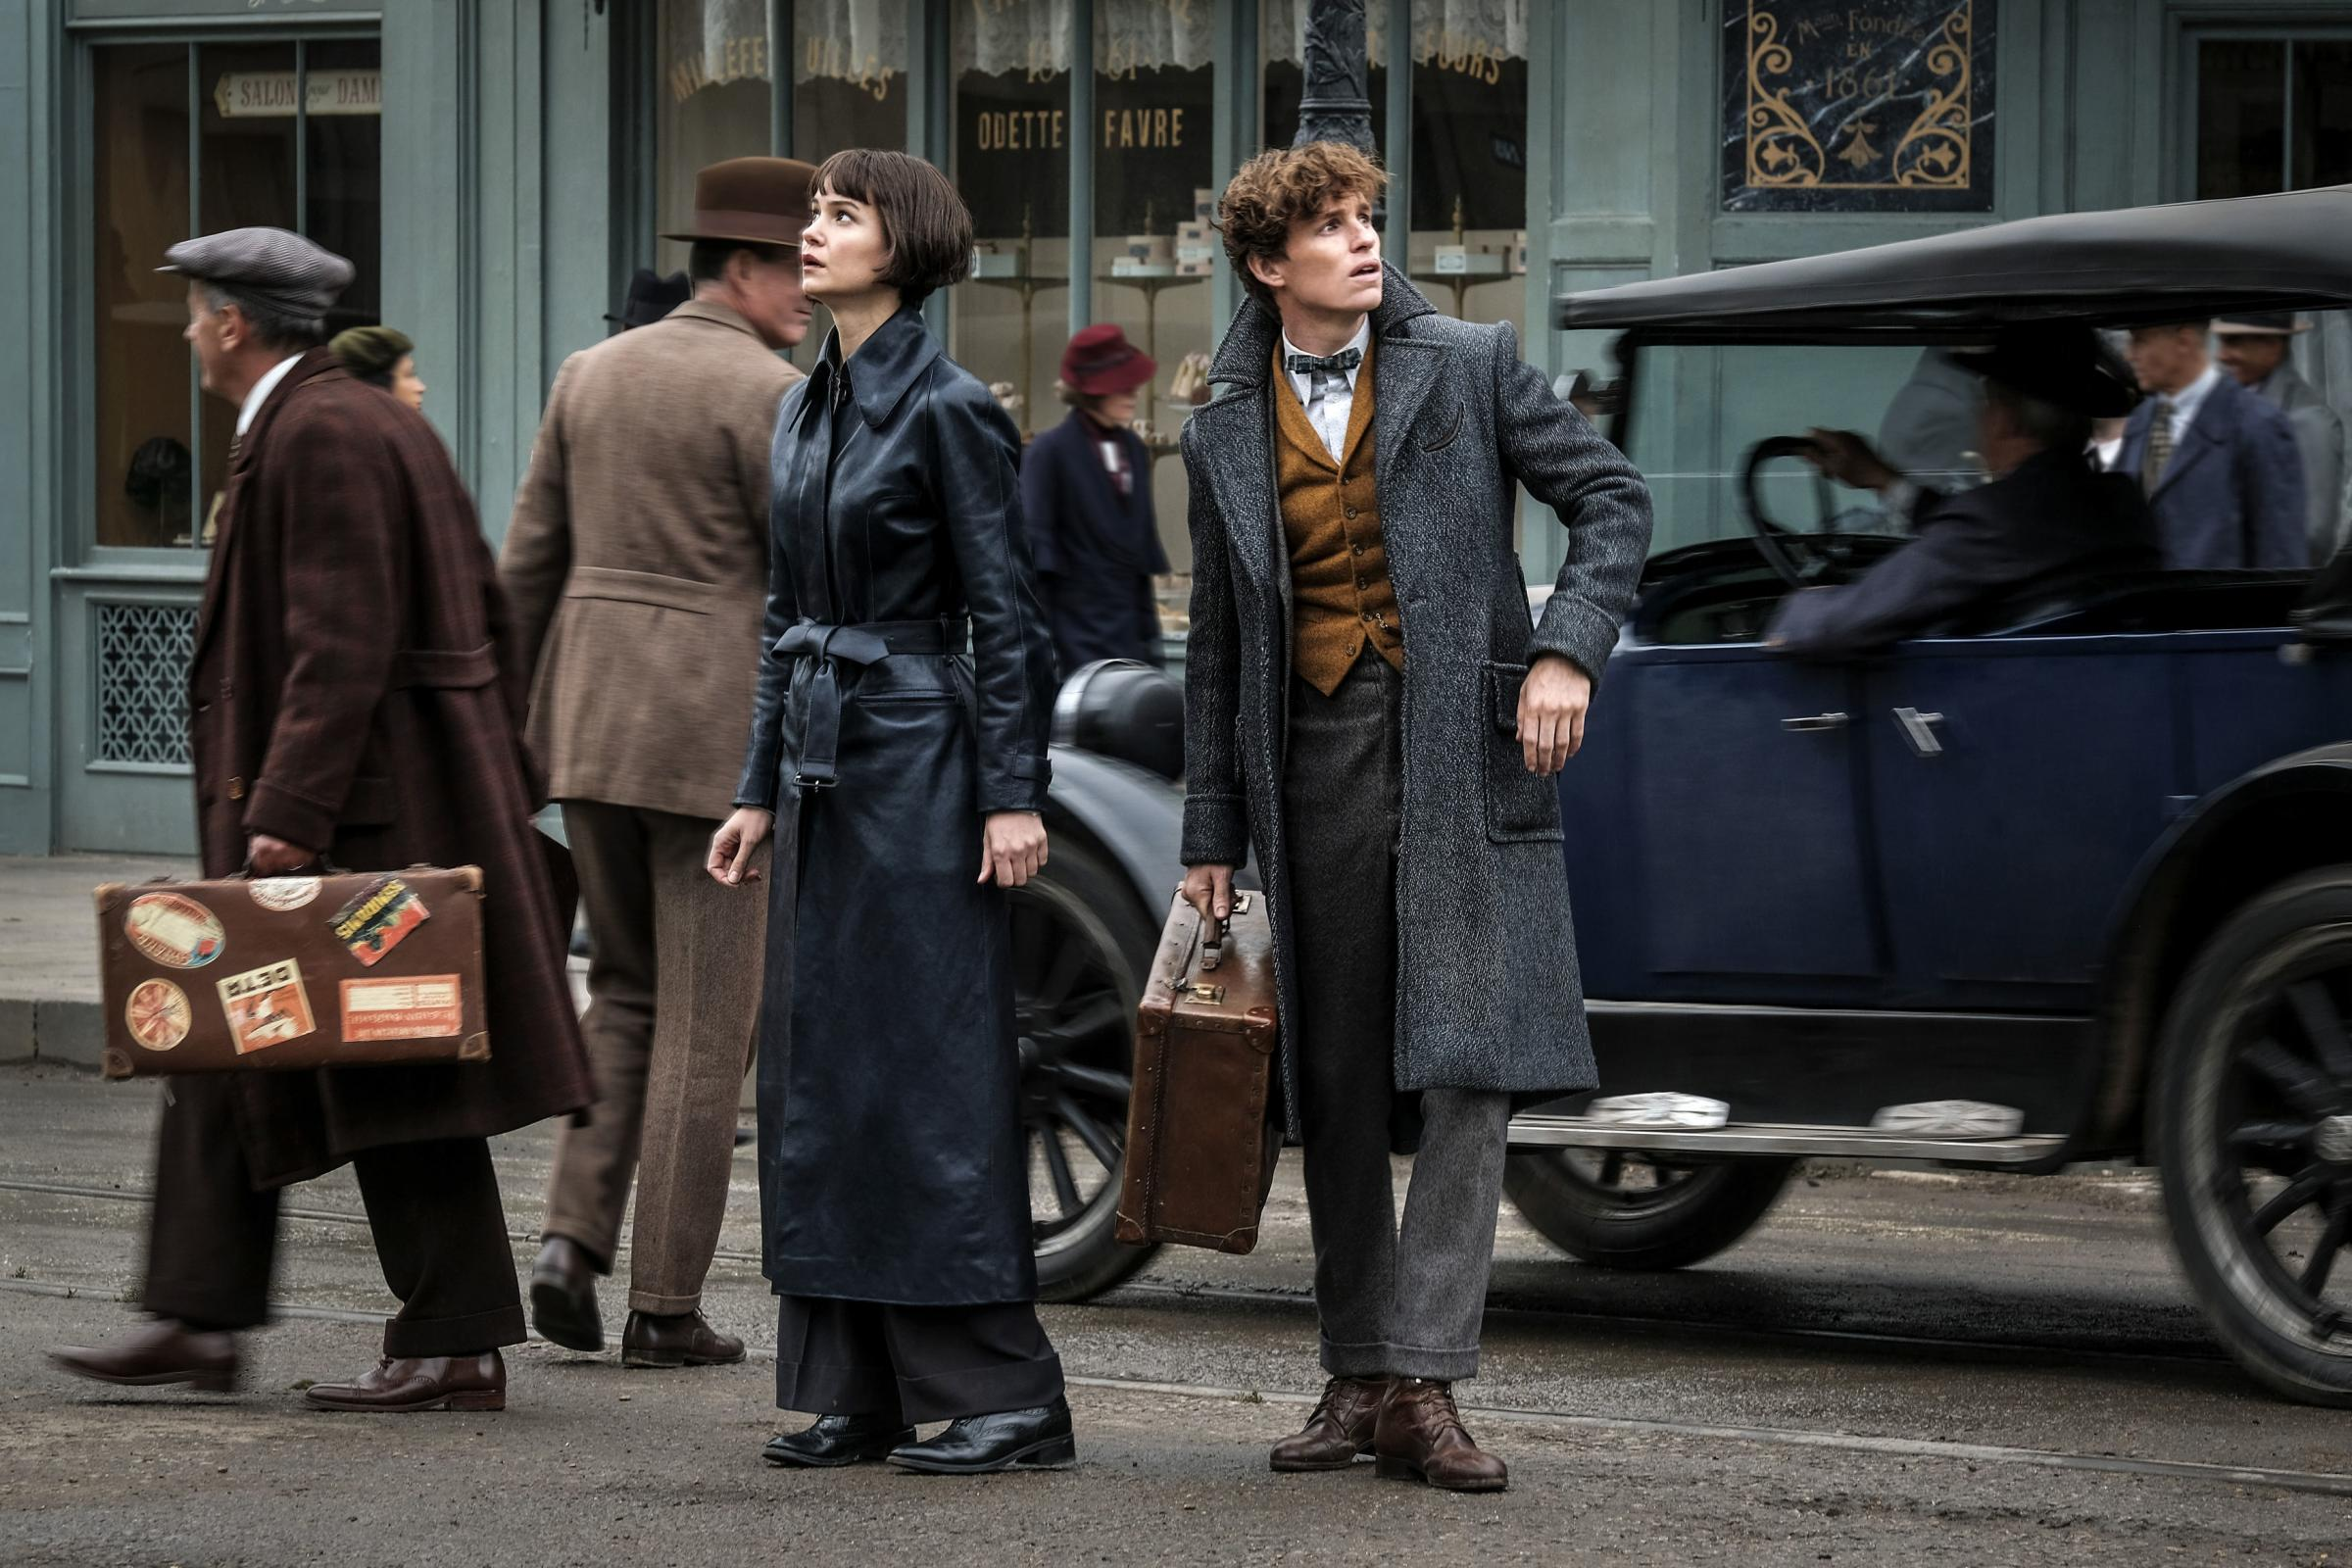 Katherine Waterston as Tina Goldstein and Eddie Redmayne as Newt Scamander